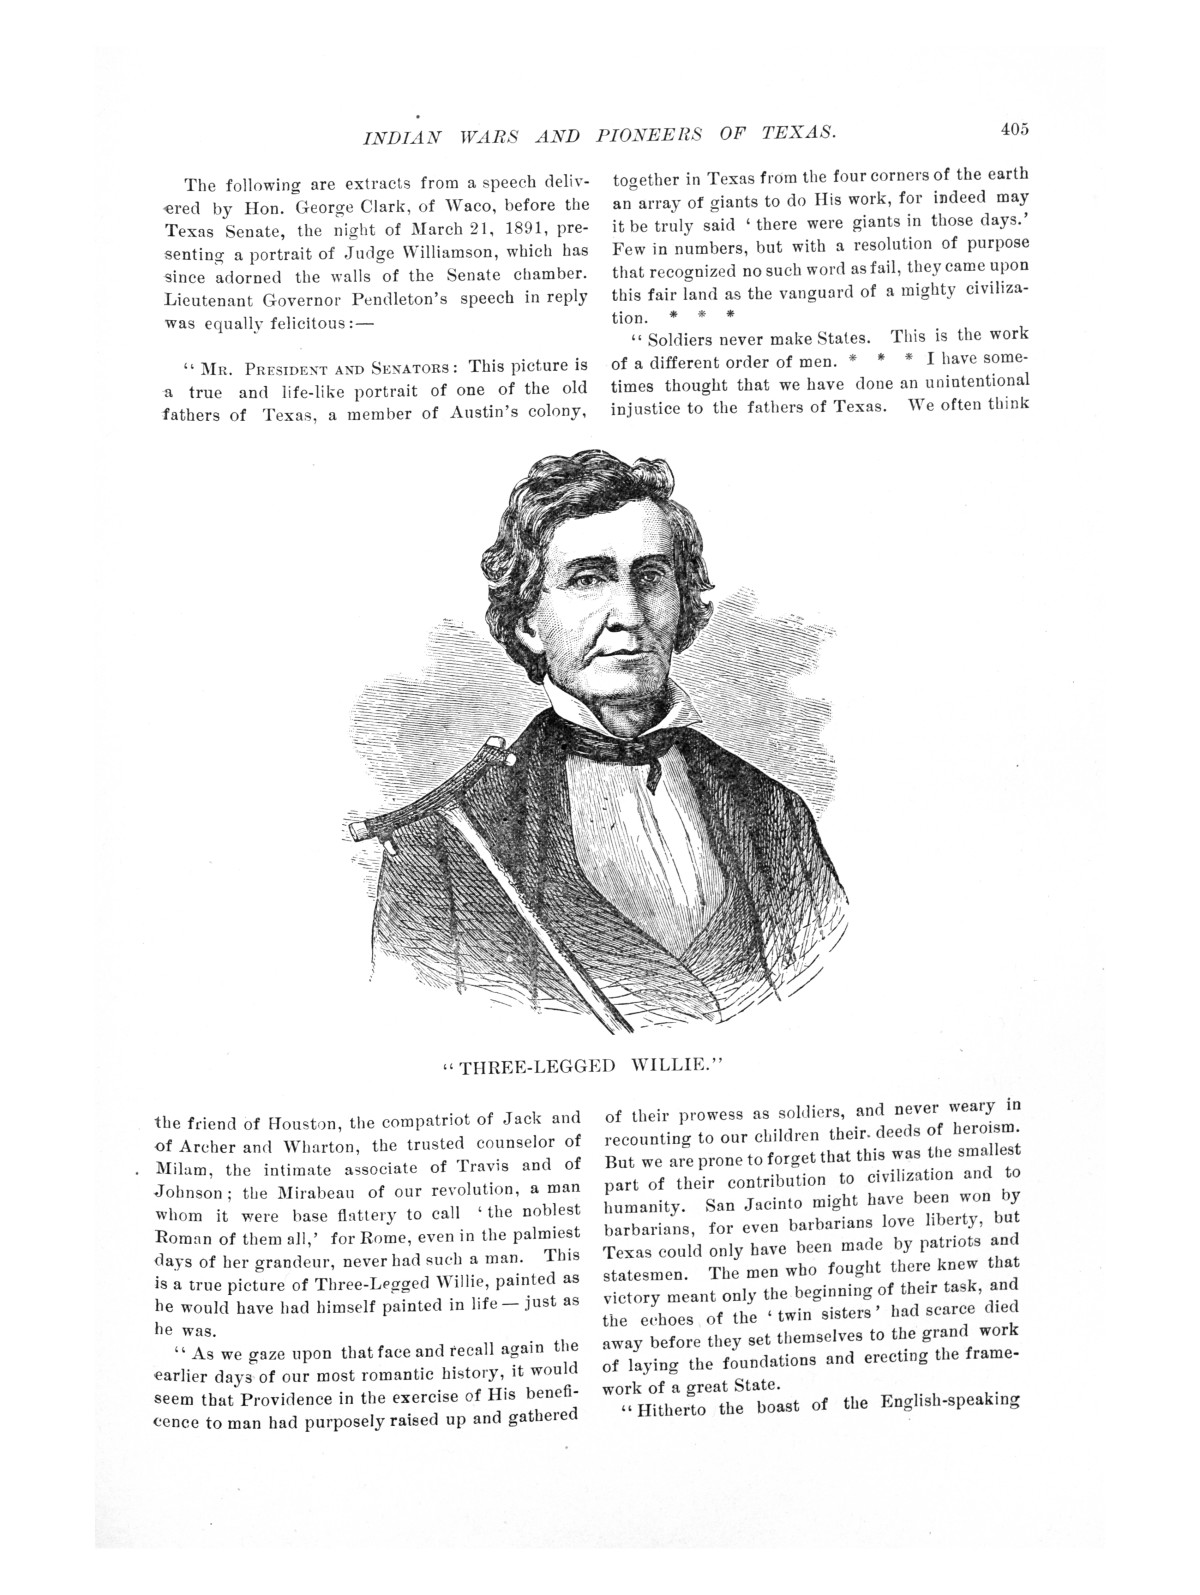 Indian wars and pioneers of Texas / by John Henry Brown.                                                                                                      [Sequence #]: 482 of 894